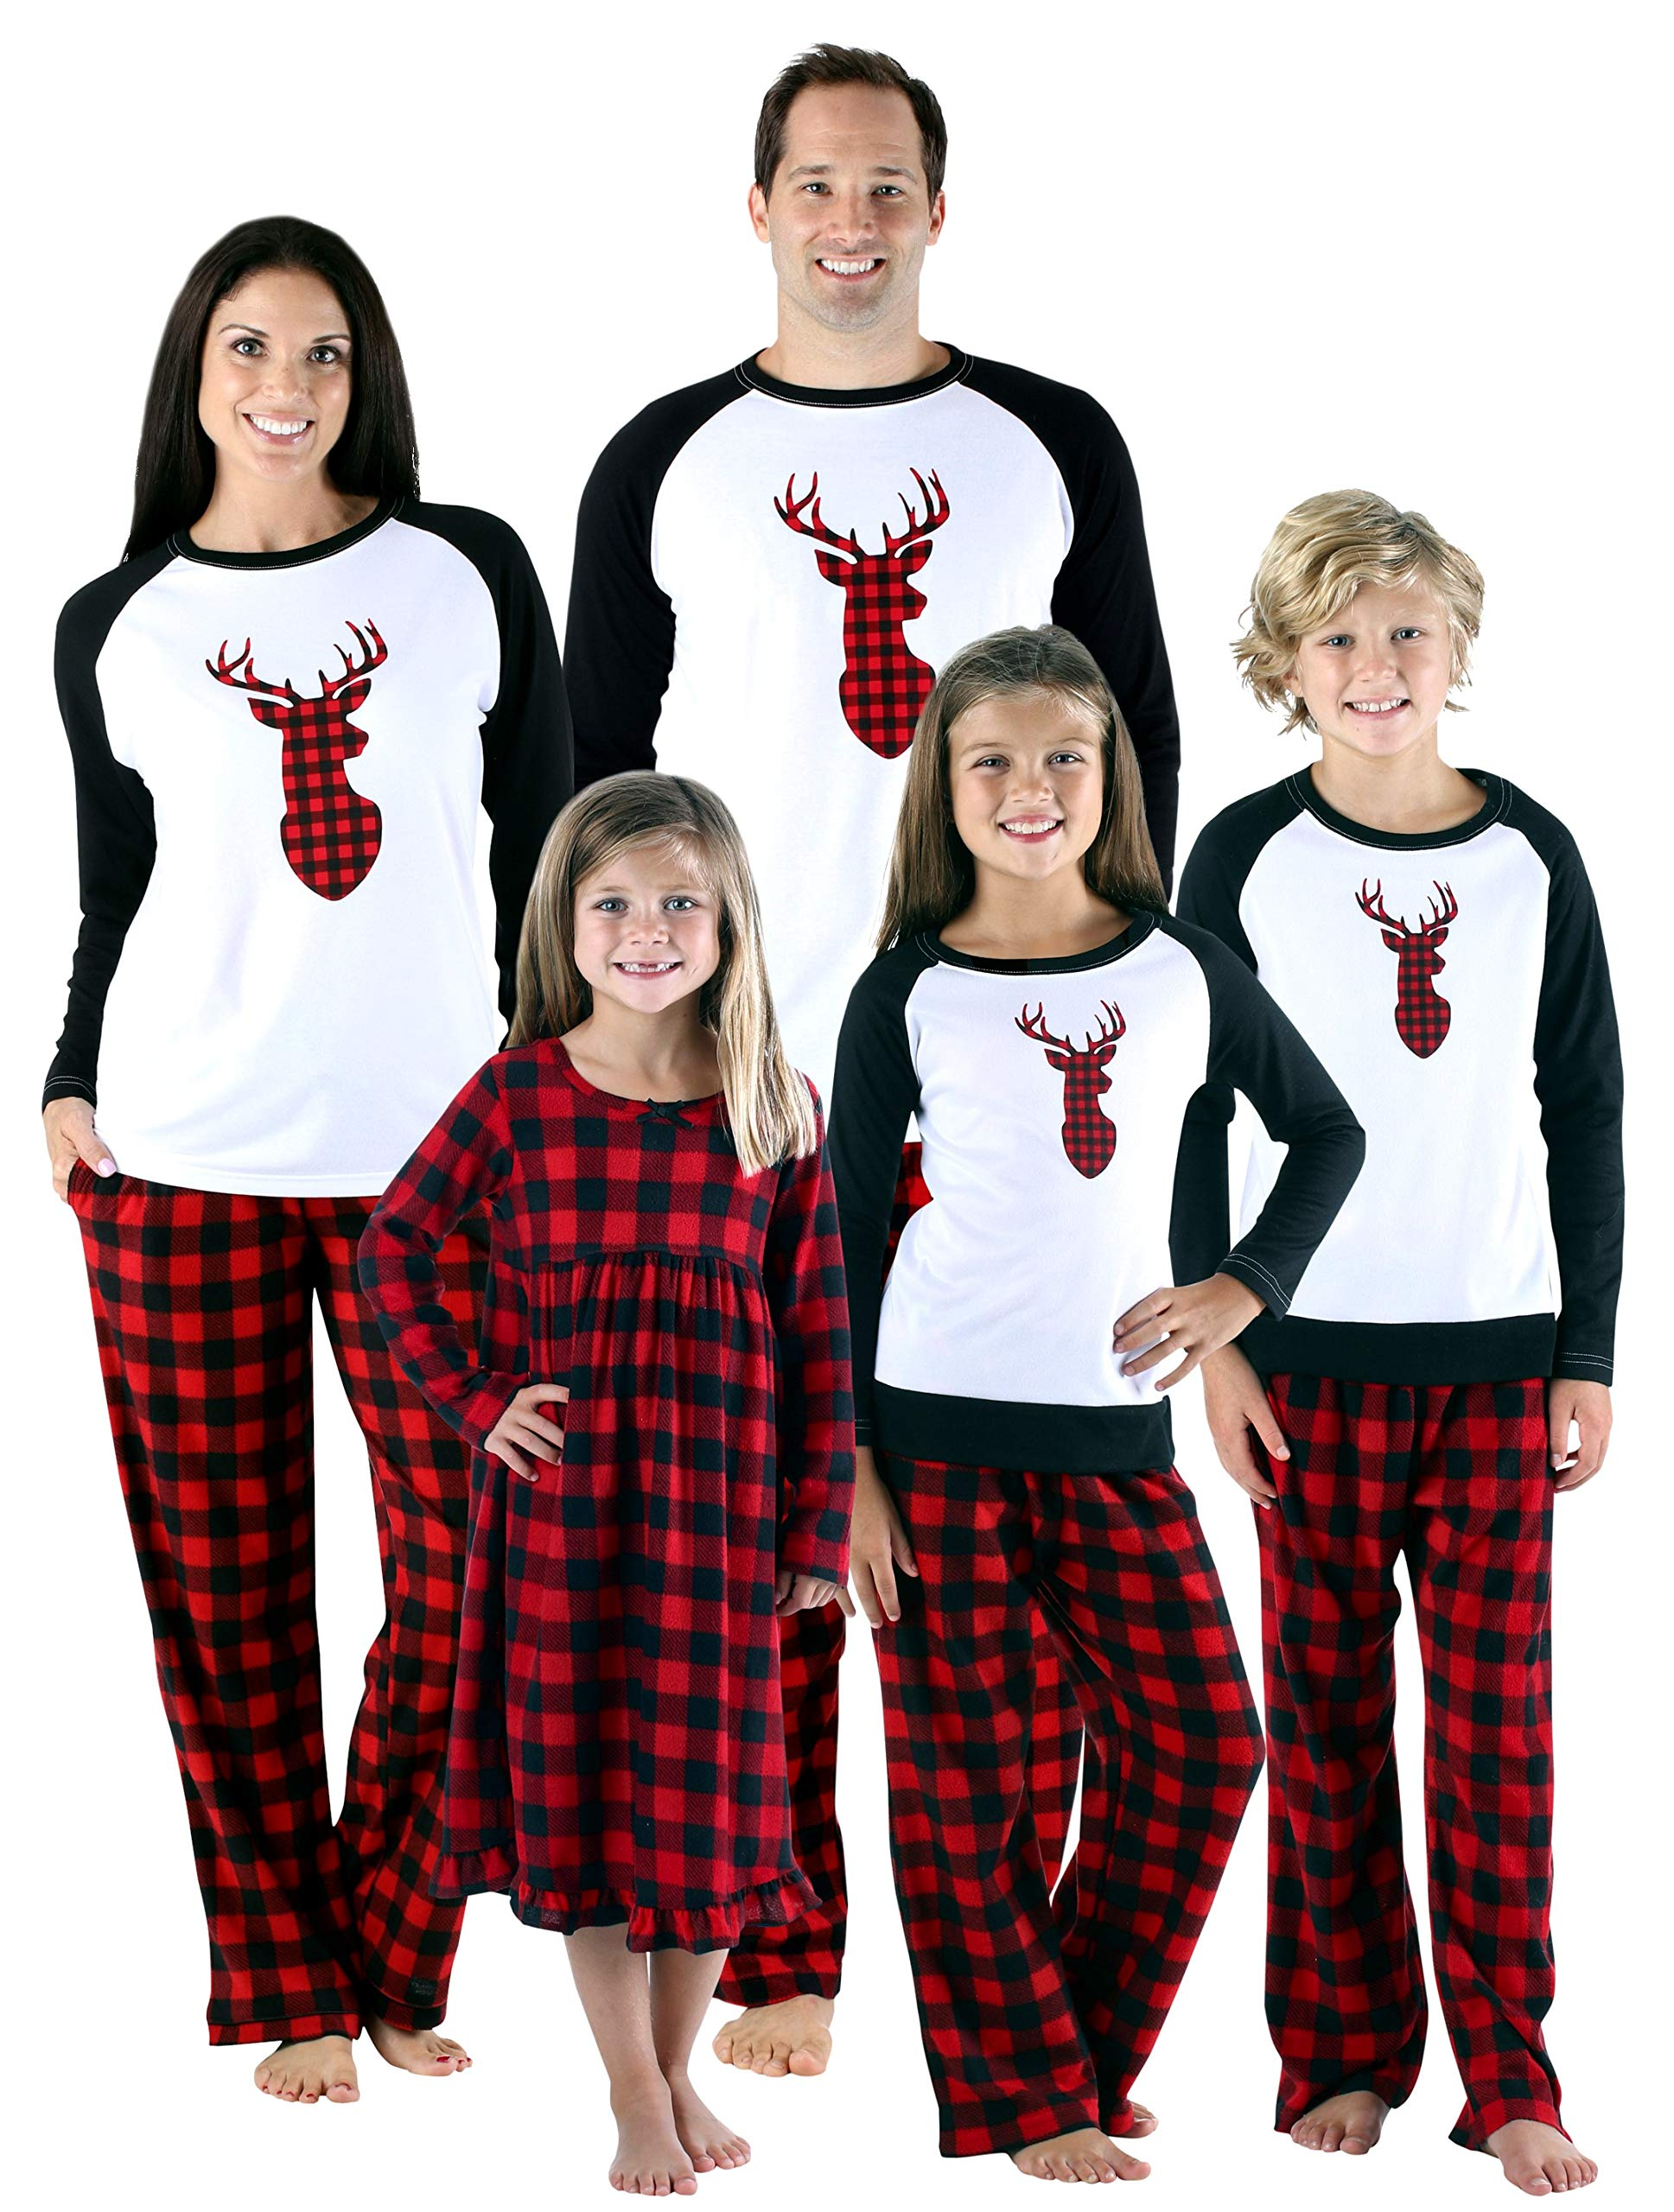 SleepytimePjs Holiday Family Matching Fleece Deer Plaid Pajama PJ Sets 94c0d73ca